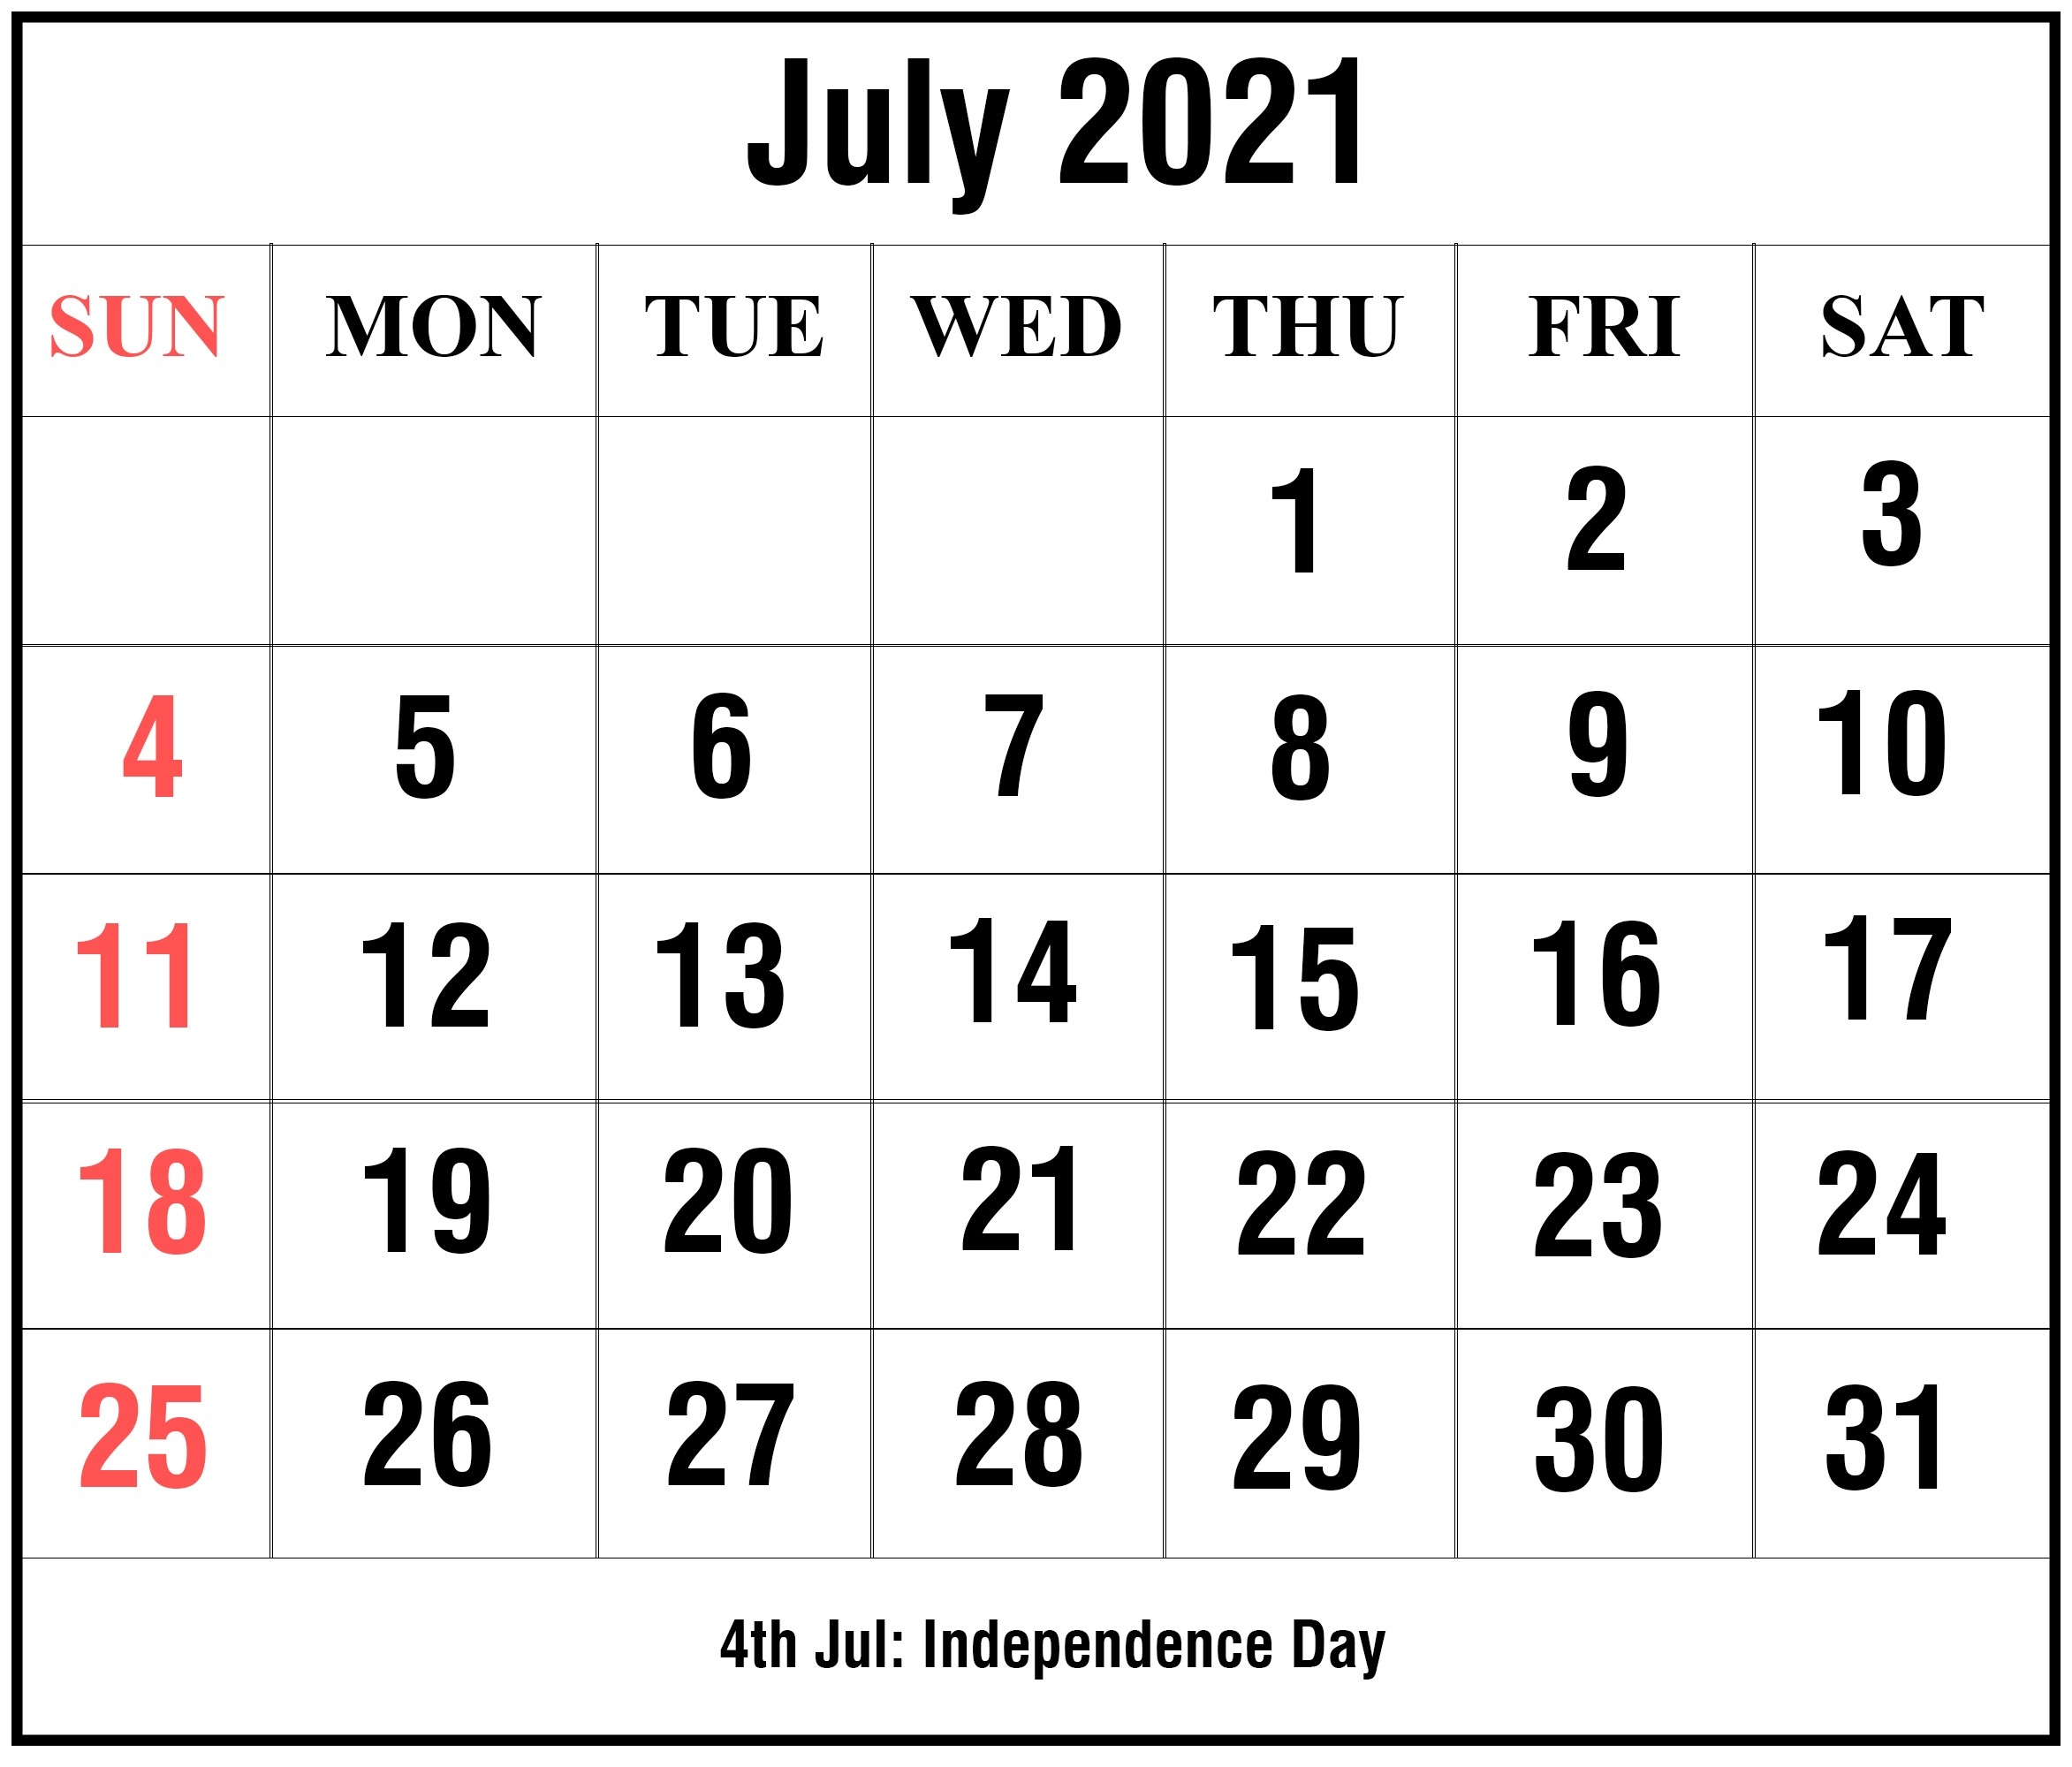 Free Editable Calendar 2021 July For All Users   Free Printable Calendar Monthly July 2021 Tithi Calendar